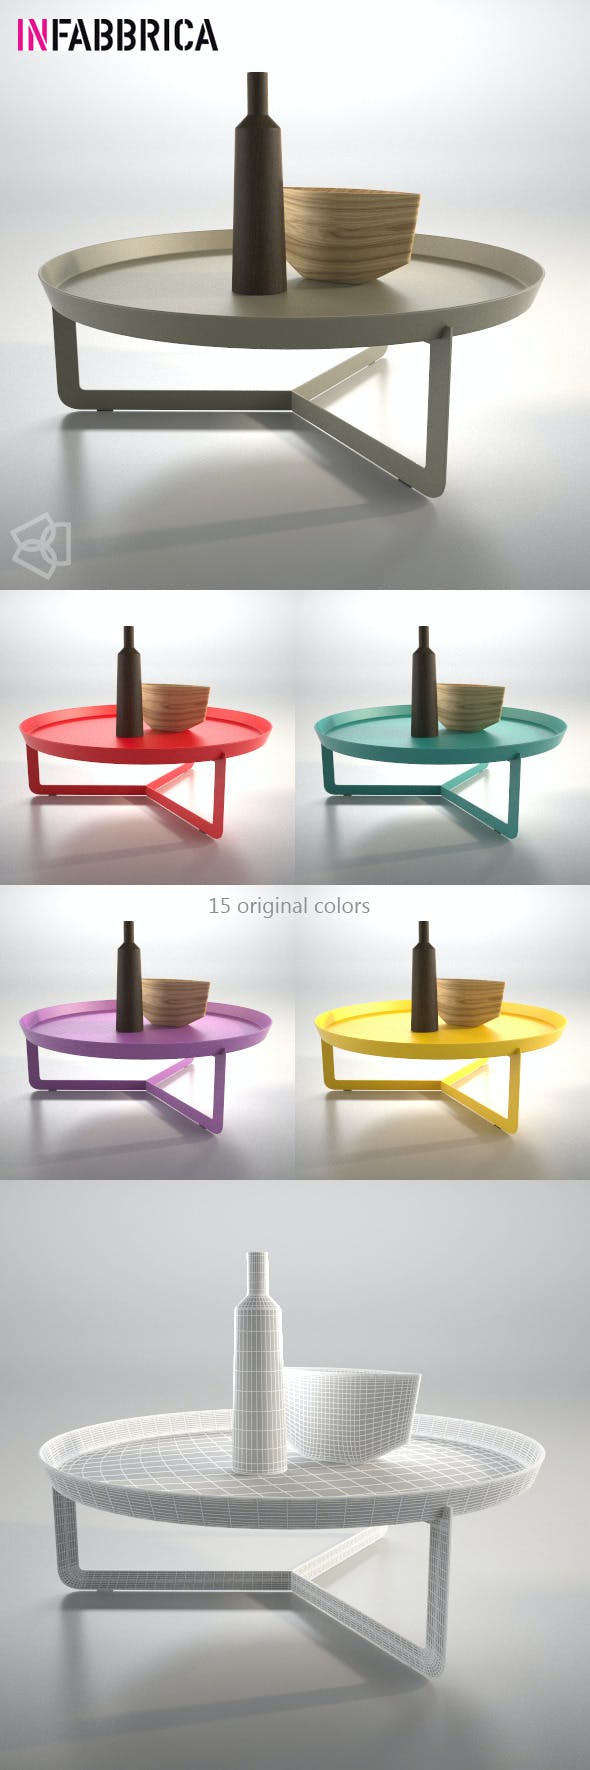 Table Round3 by Infabbrica - 3DOcean Item for Sale